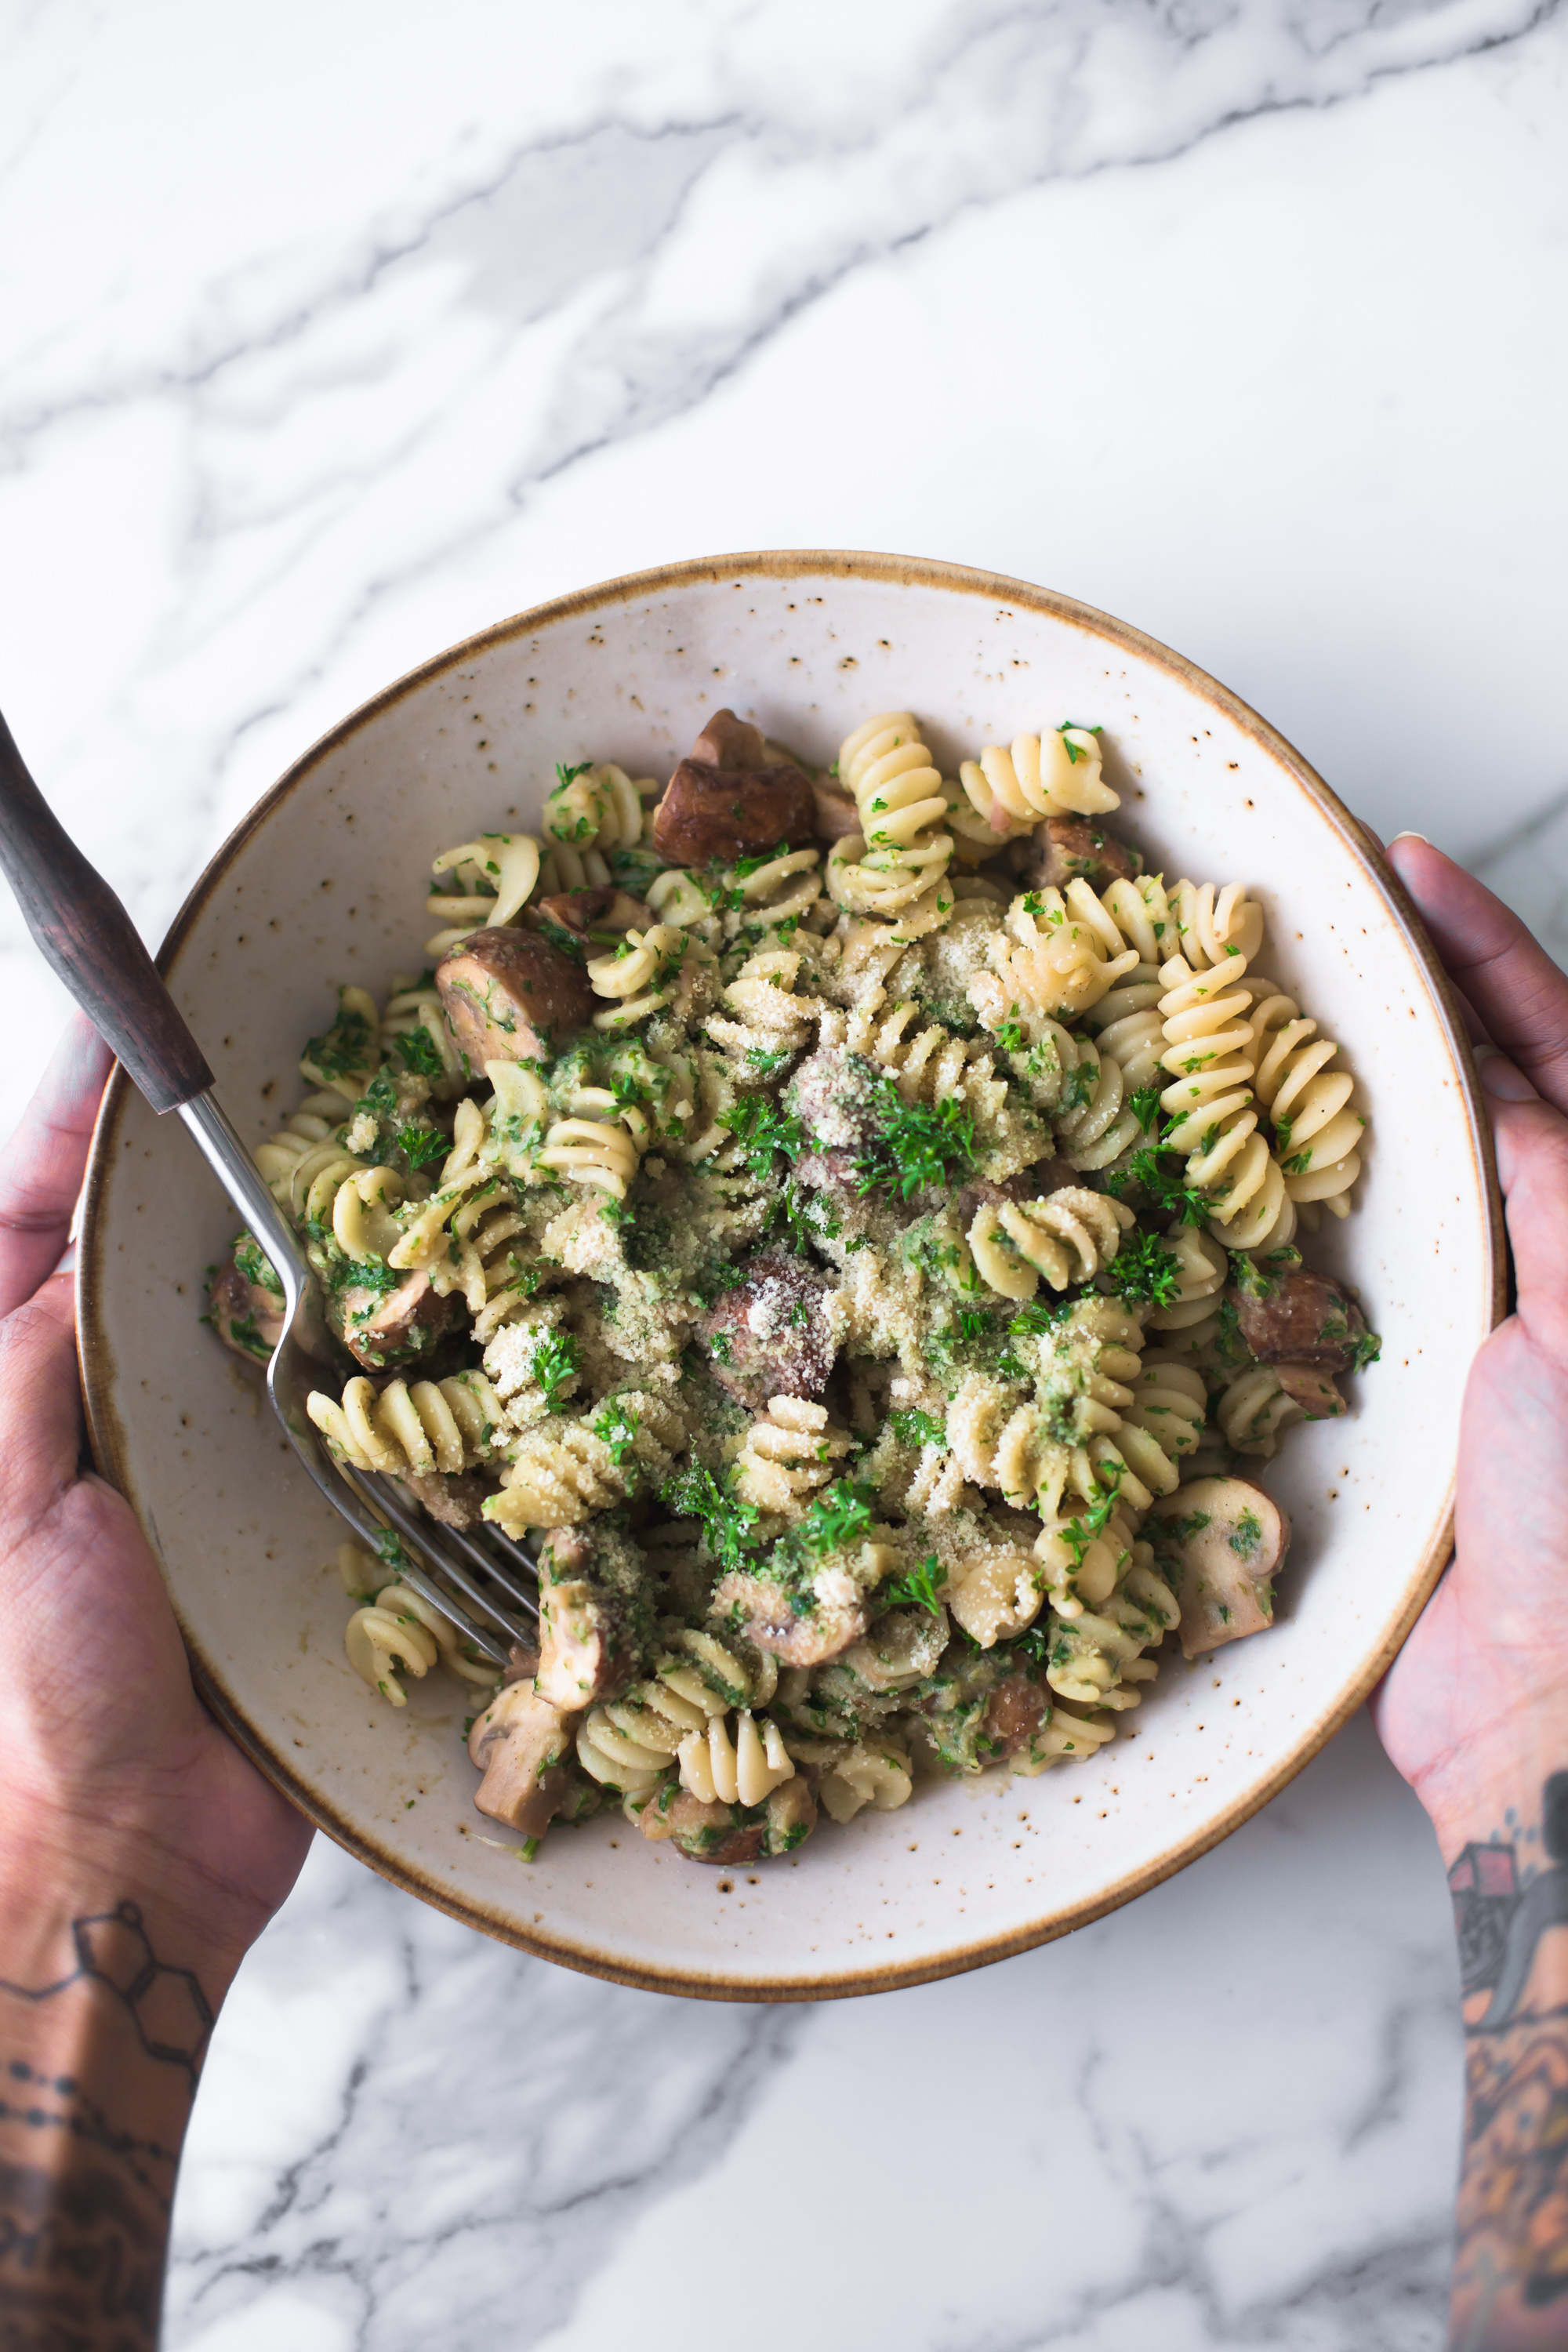 Delicious Vegan Mushroom Pasta with Chestnut Parsley Pesto. A simple, delicious and easy to prepare Christmas dish, ready in under 20 minutes.Delicious Vegan Mushroom Pasta with Chestnut Parsley Pesto. A simple, delicious and easy to prepare Christmas dish, ready in under 20 minutes. #vegan #christmas #veganrecipes #healthy #pesto #mushrooms #chestnuts #pestopasta #vegetarian